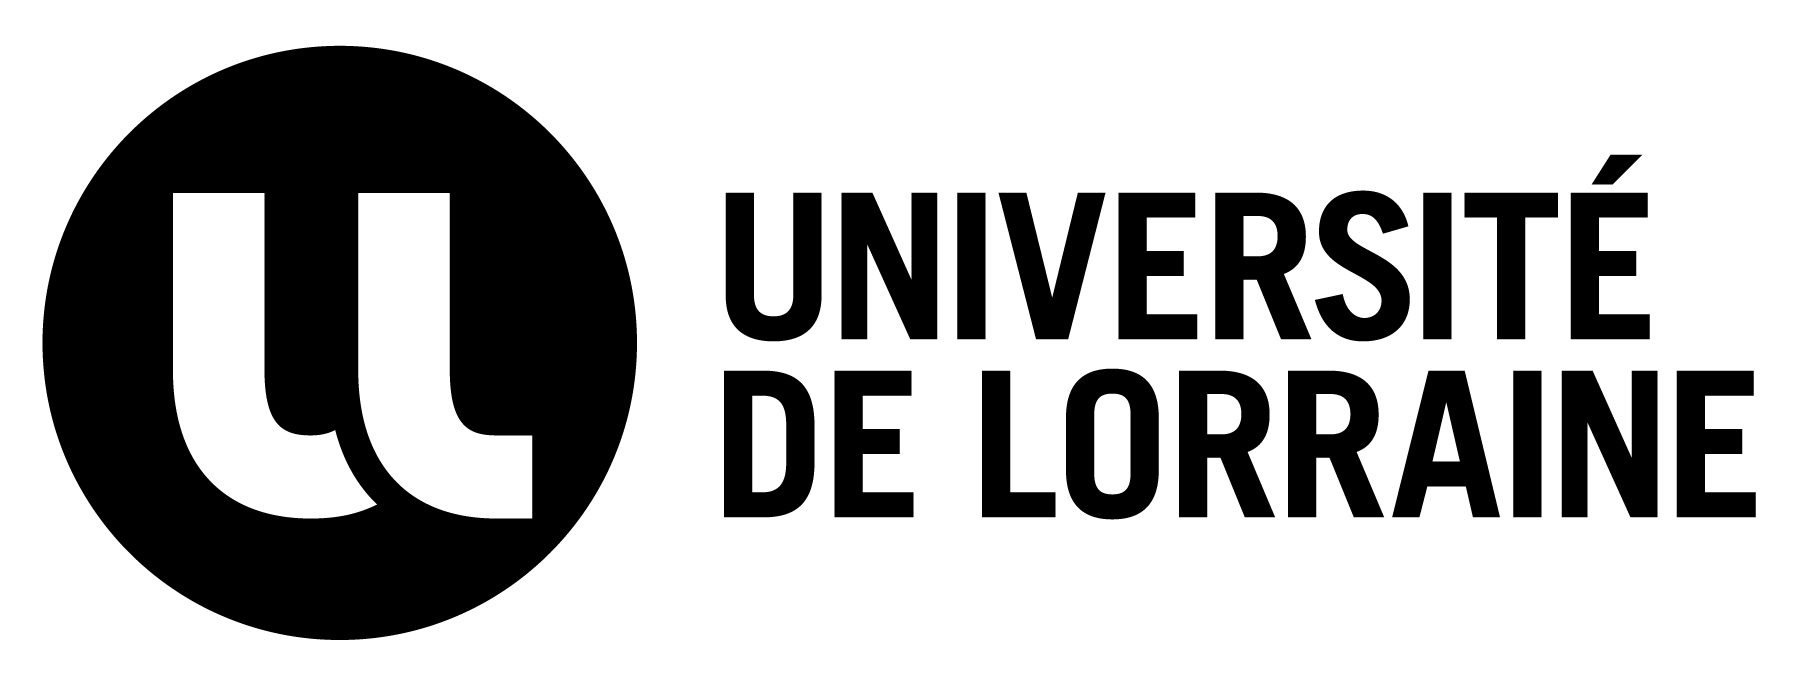 University of Lorraine